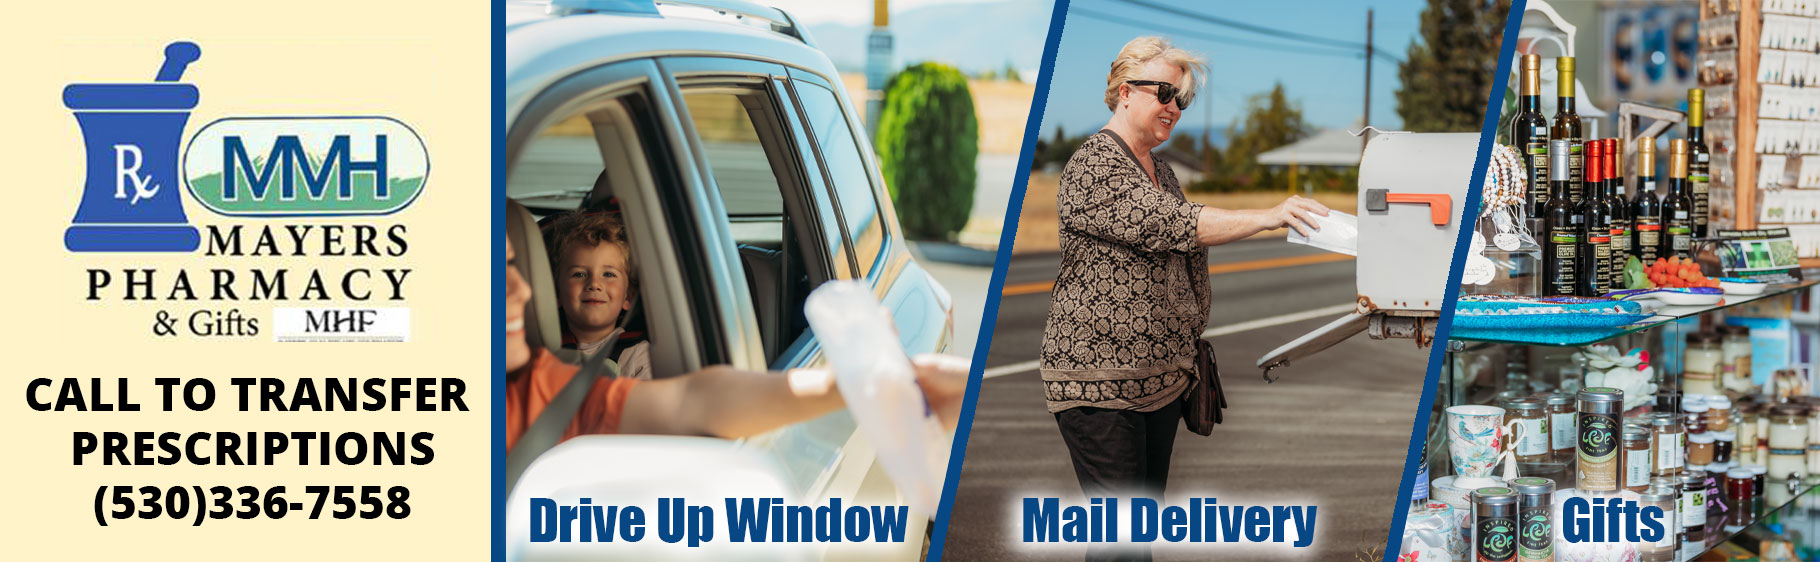 Banner pictures of four separate photos (Left to Right)  First Image: Picture of an Rx Icon and MMH icon. It says: MAYERS PHARMACY & Gifts (MHF) CALL TO TRANSFER PRESCIPTIONS (530)336-7558  Second Image: Picture of a mother reaching her hand out of the window to grab her prescription at a Pharmacy. Her toddler son is in the backseat in his carseat smiling. It says:  Drive Up Window  Third Image: Picture of a woman wearing sunglasses with a crossbody bag and sunglasses. She is putting mail in a mailbox. It says: Mail Delivery  Fourth Image: Picture of Gift Shop display of jewelry, wines, coffee, & candles. It says: Gifts